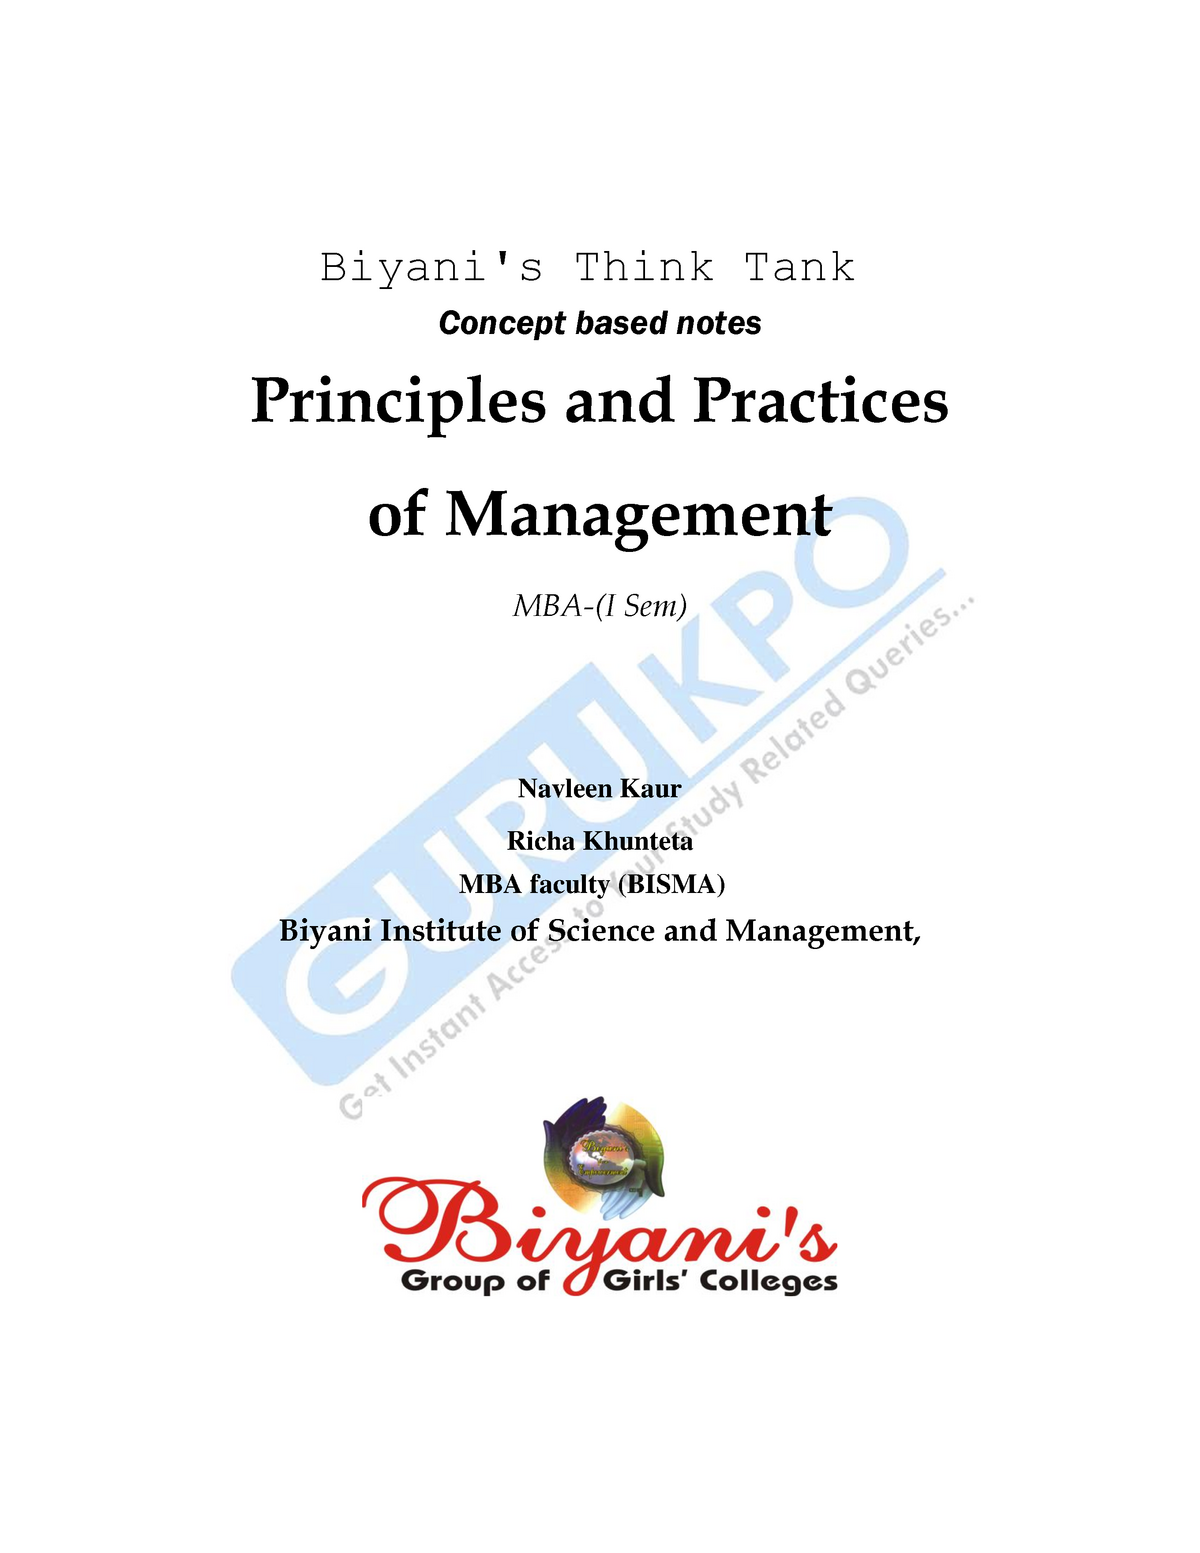 Principles and Practices of Management - 16MBA: Business